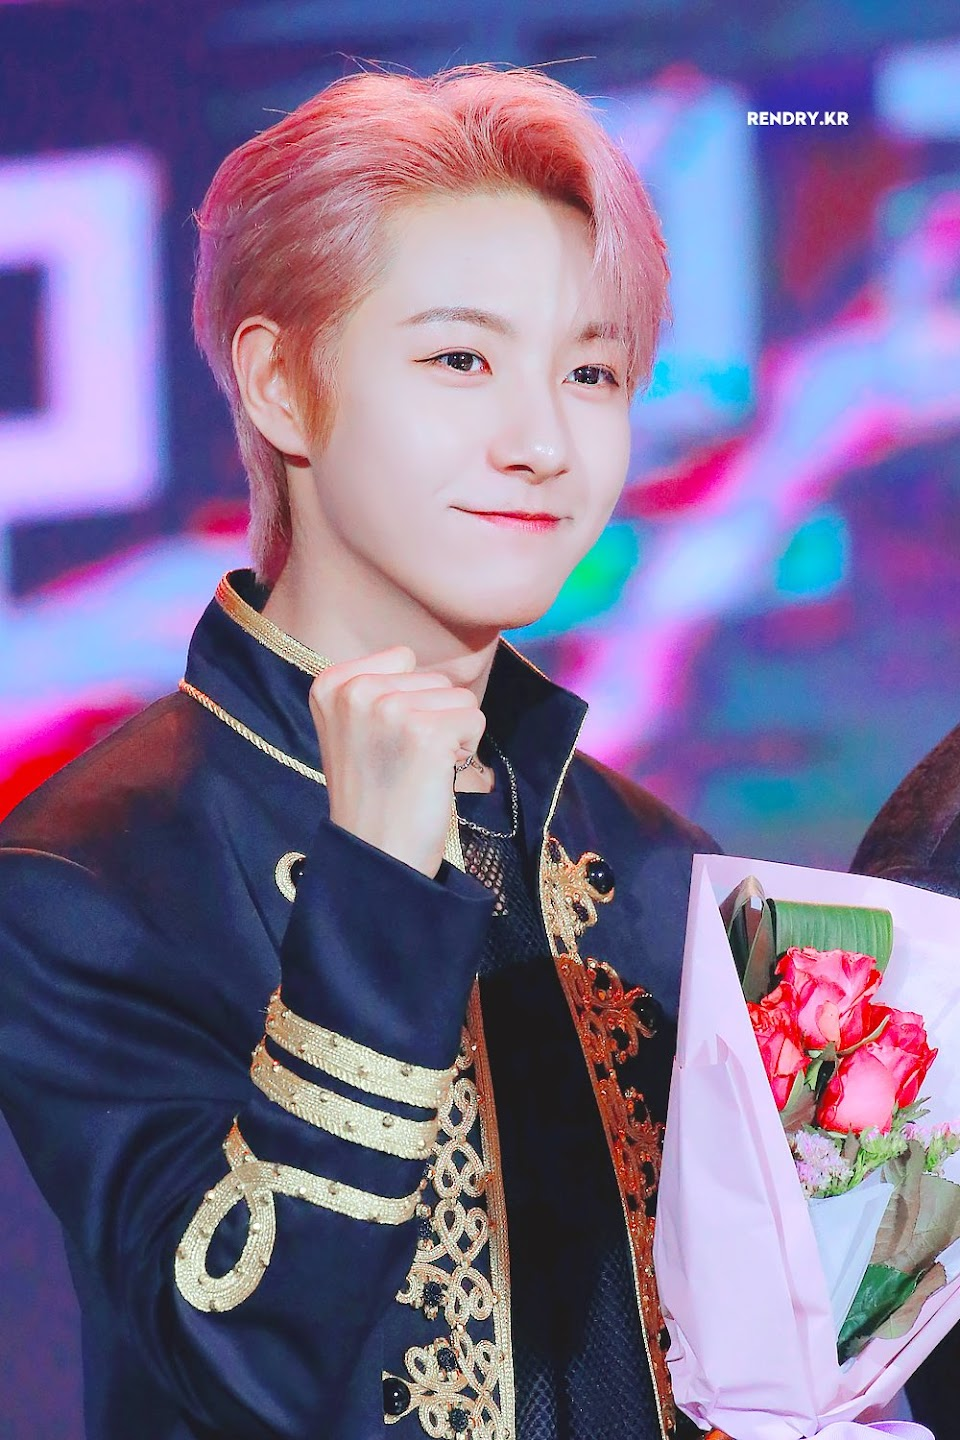 nct dream renjun 2